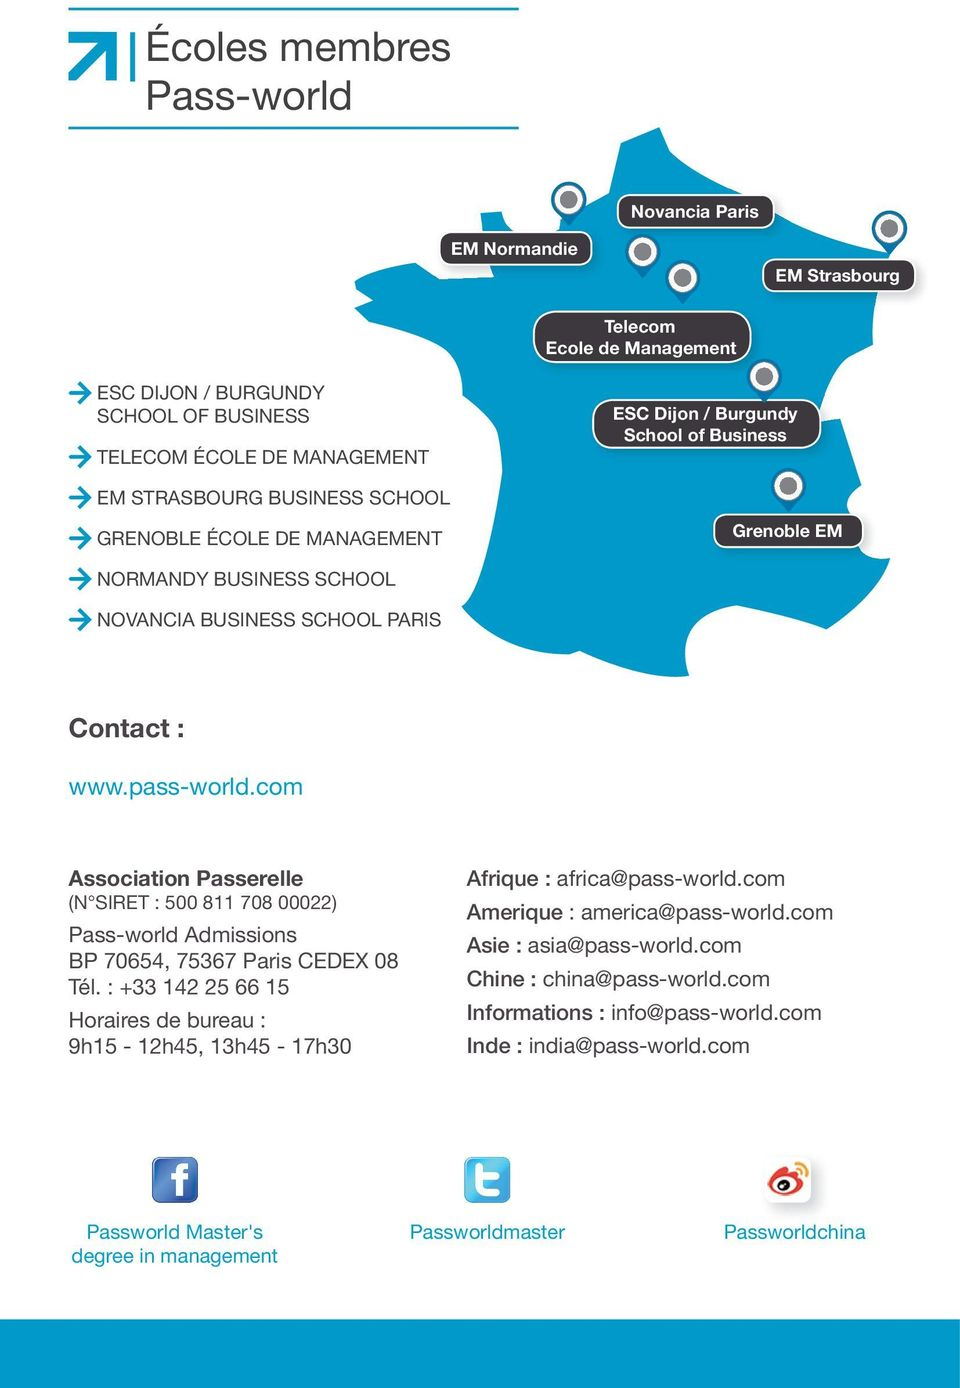 com association passerelle (N SIRET : 500 811 708 00022) Pass-world Admissions BP 70654, 75367 Paris CEDEX 08 Tél.